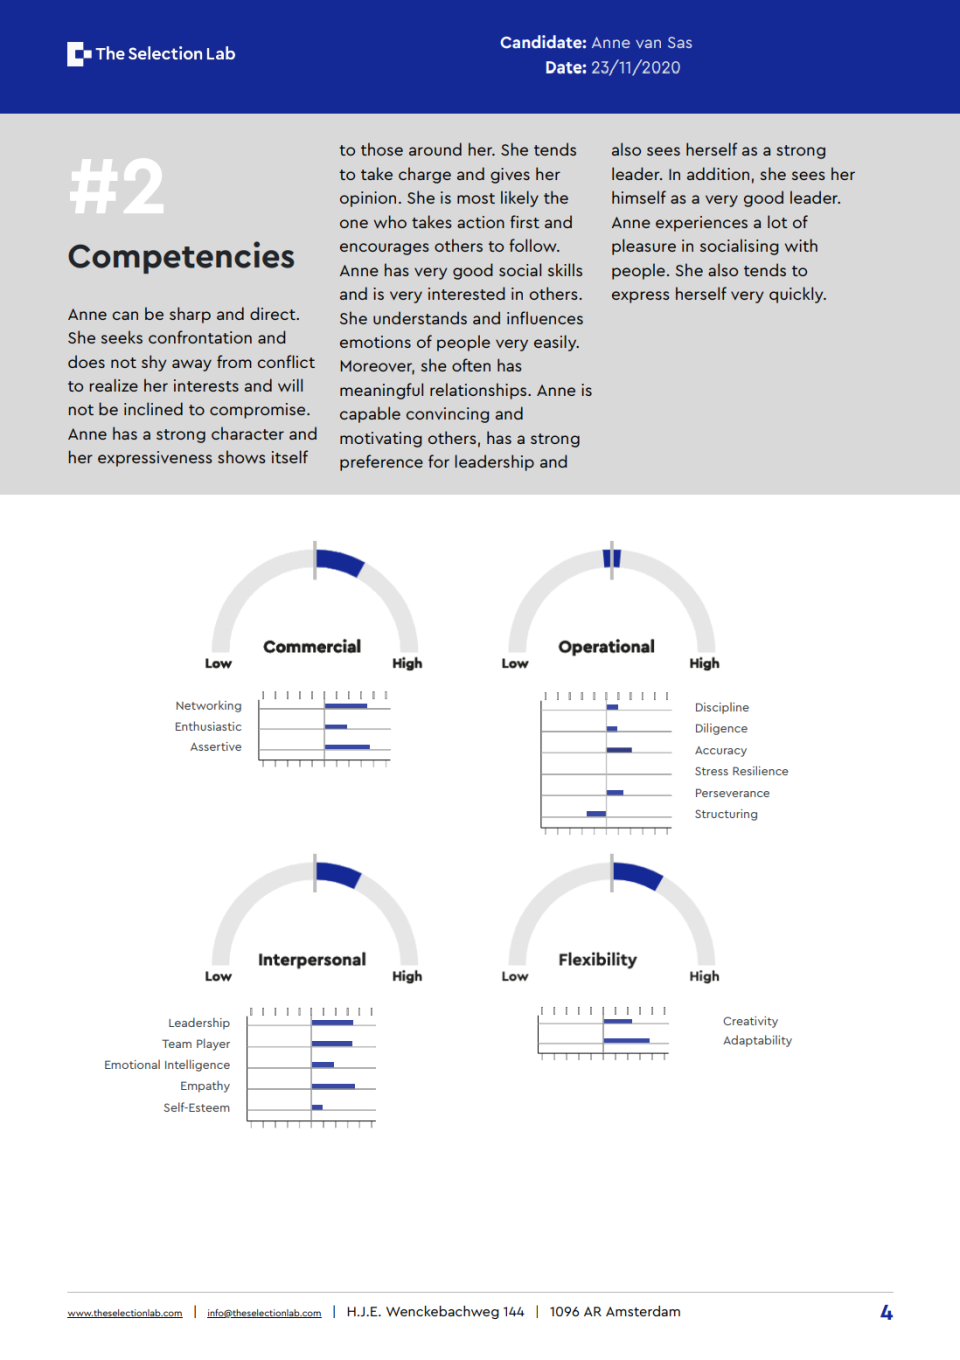 Competencies section